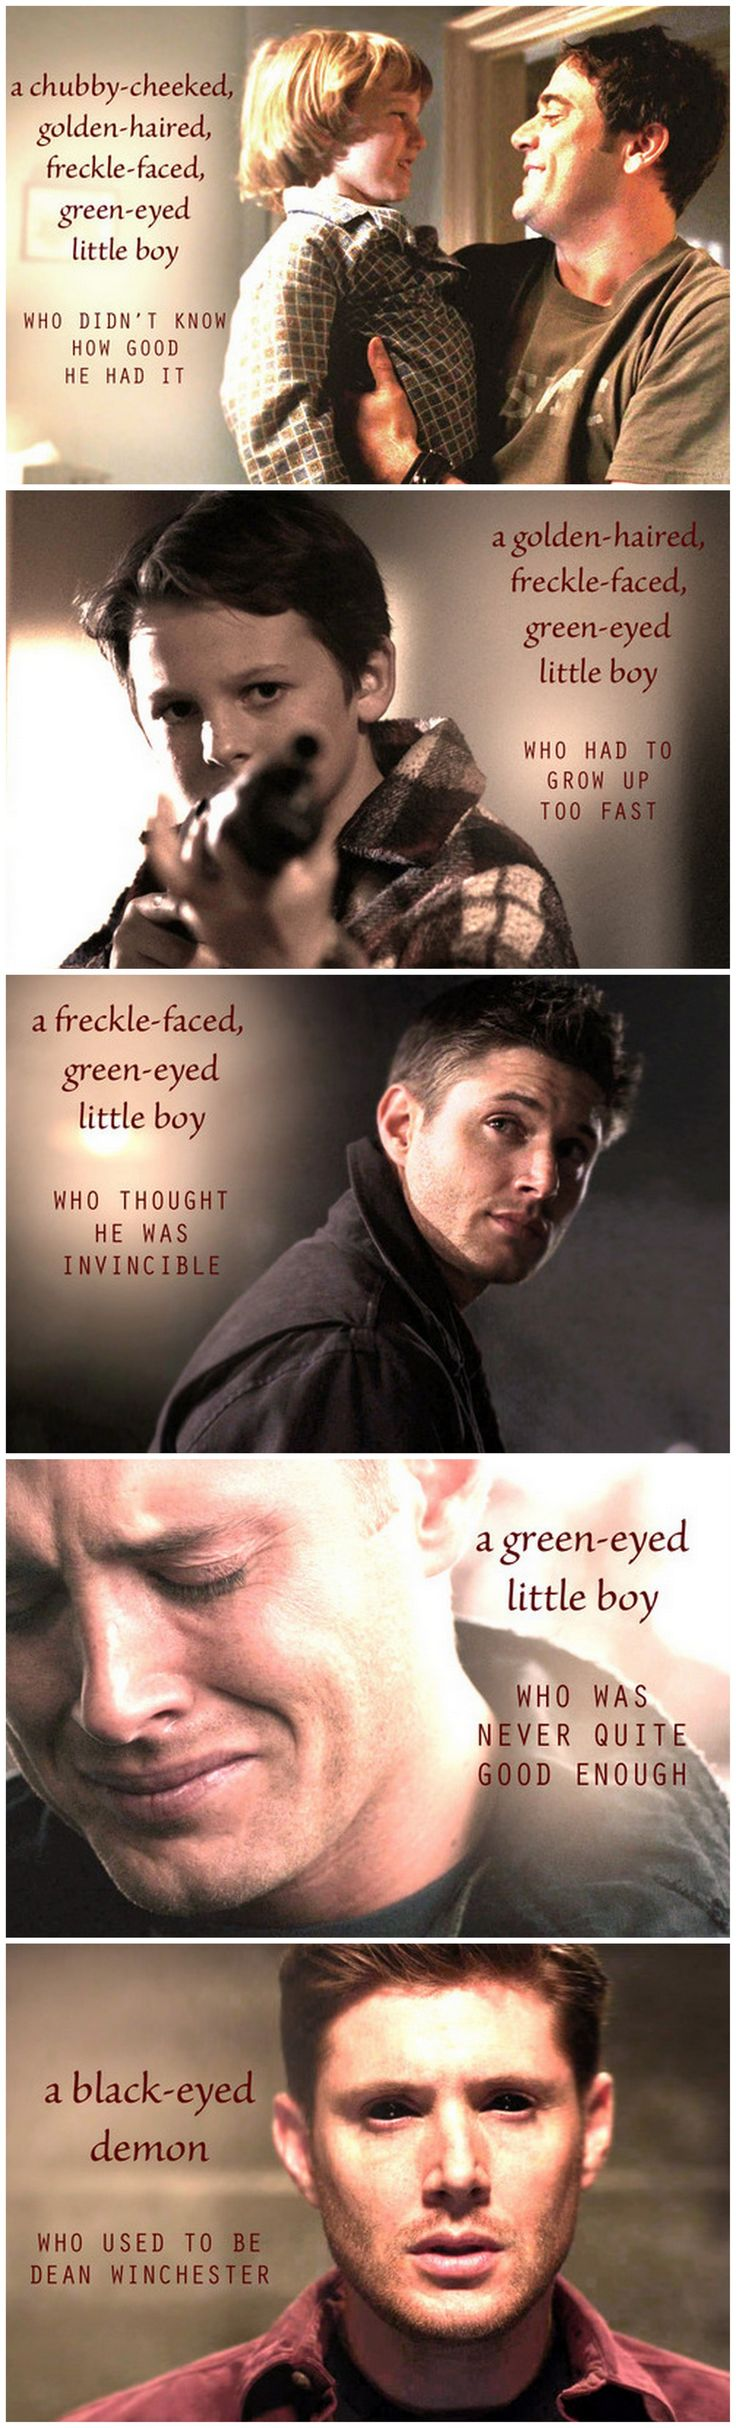 Dean Winchester growing up - I didn't need this. Now what am I supposed to do with all these feels?!